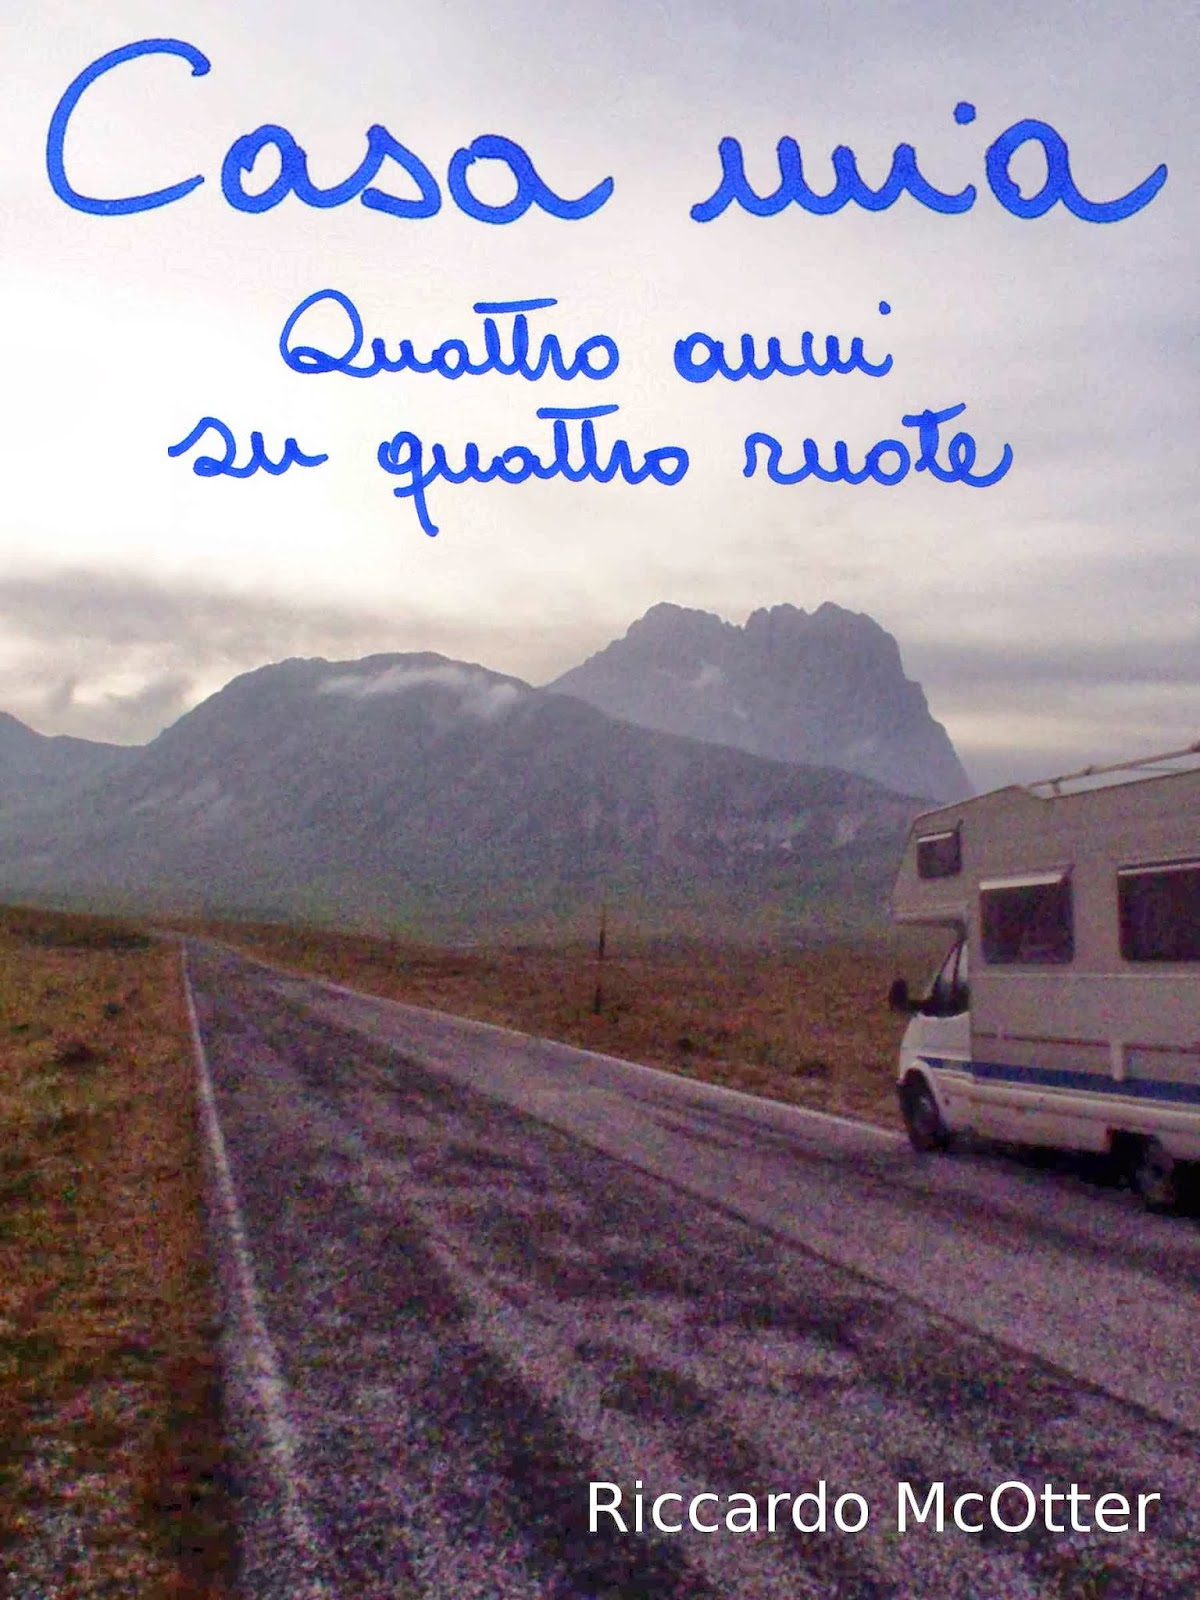 http://www.amazon.it/Casa-mia-Quattro-quattro-ruote-ebook/dp/B00ISBV7YQ/ref=sr_1_5?ie=UTF8&qid=1394109113&sr=8-5&keywords=casa+mia+quattro+anni